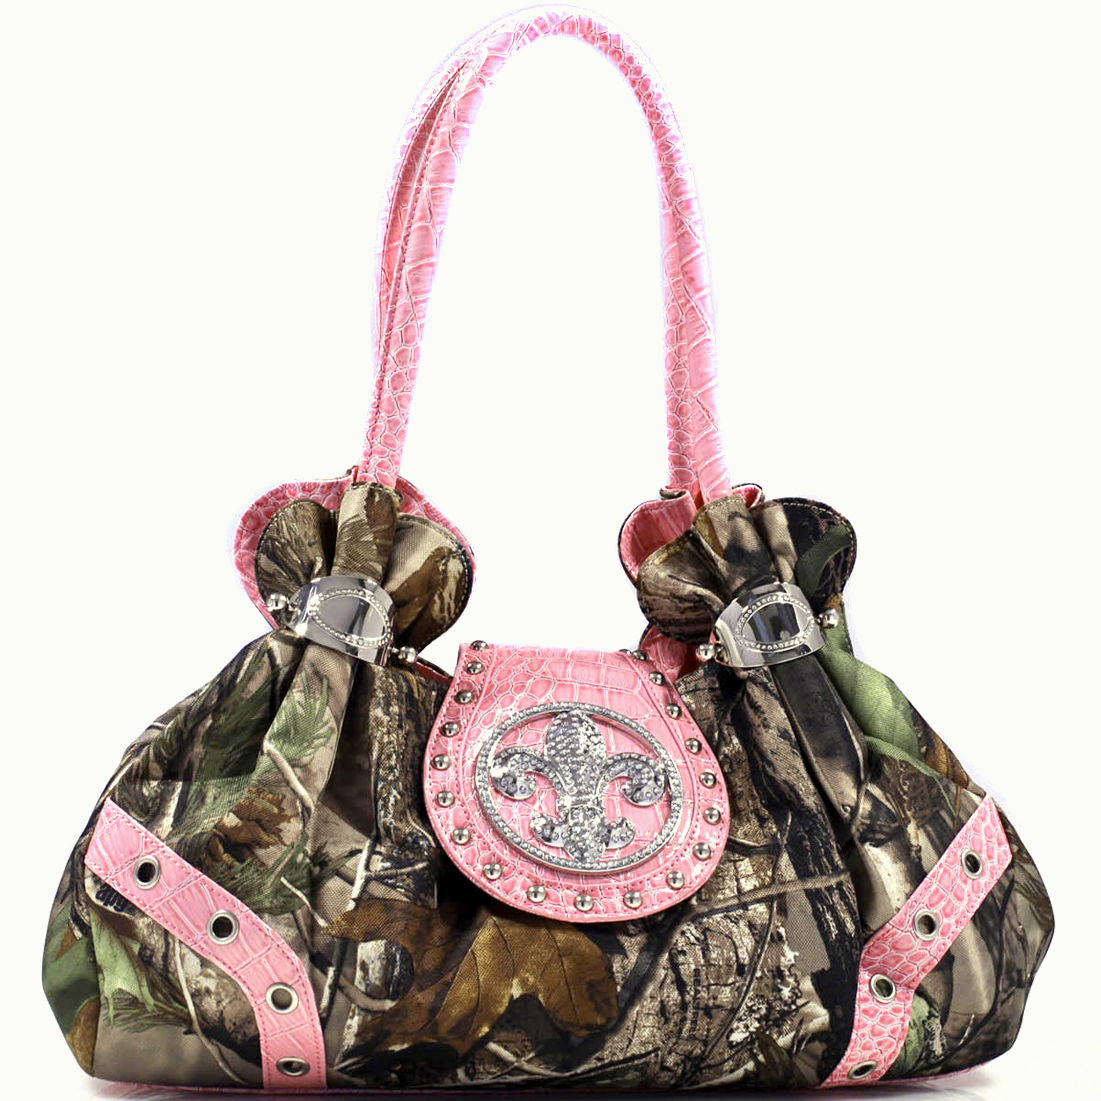 Realtree Women's Studded Camouflage Satchel Bag With Rhinestone Fleur De Lis -Camouflage/L.Pink